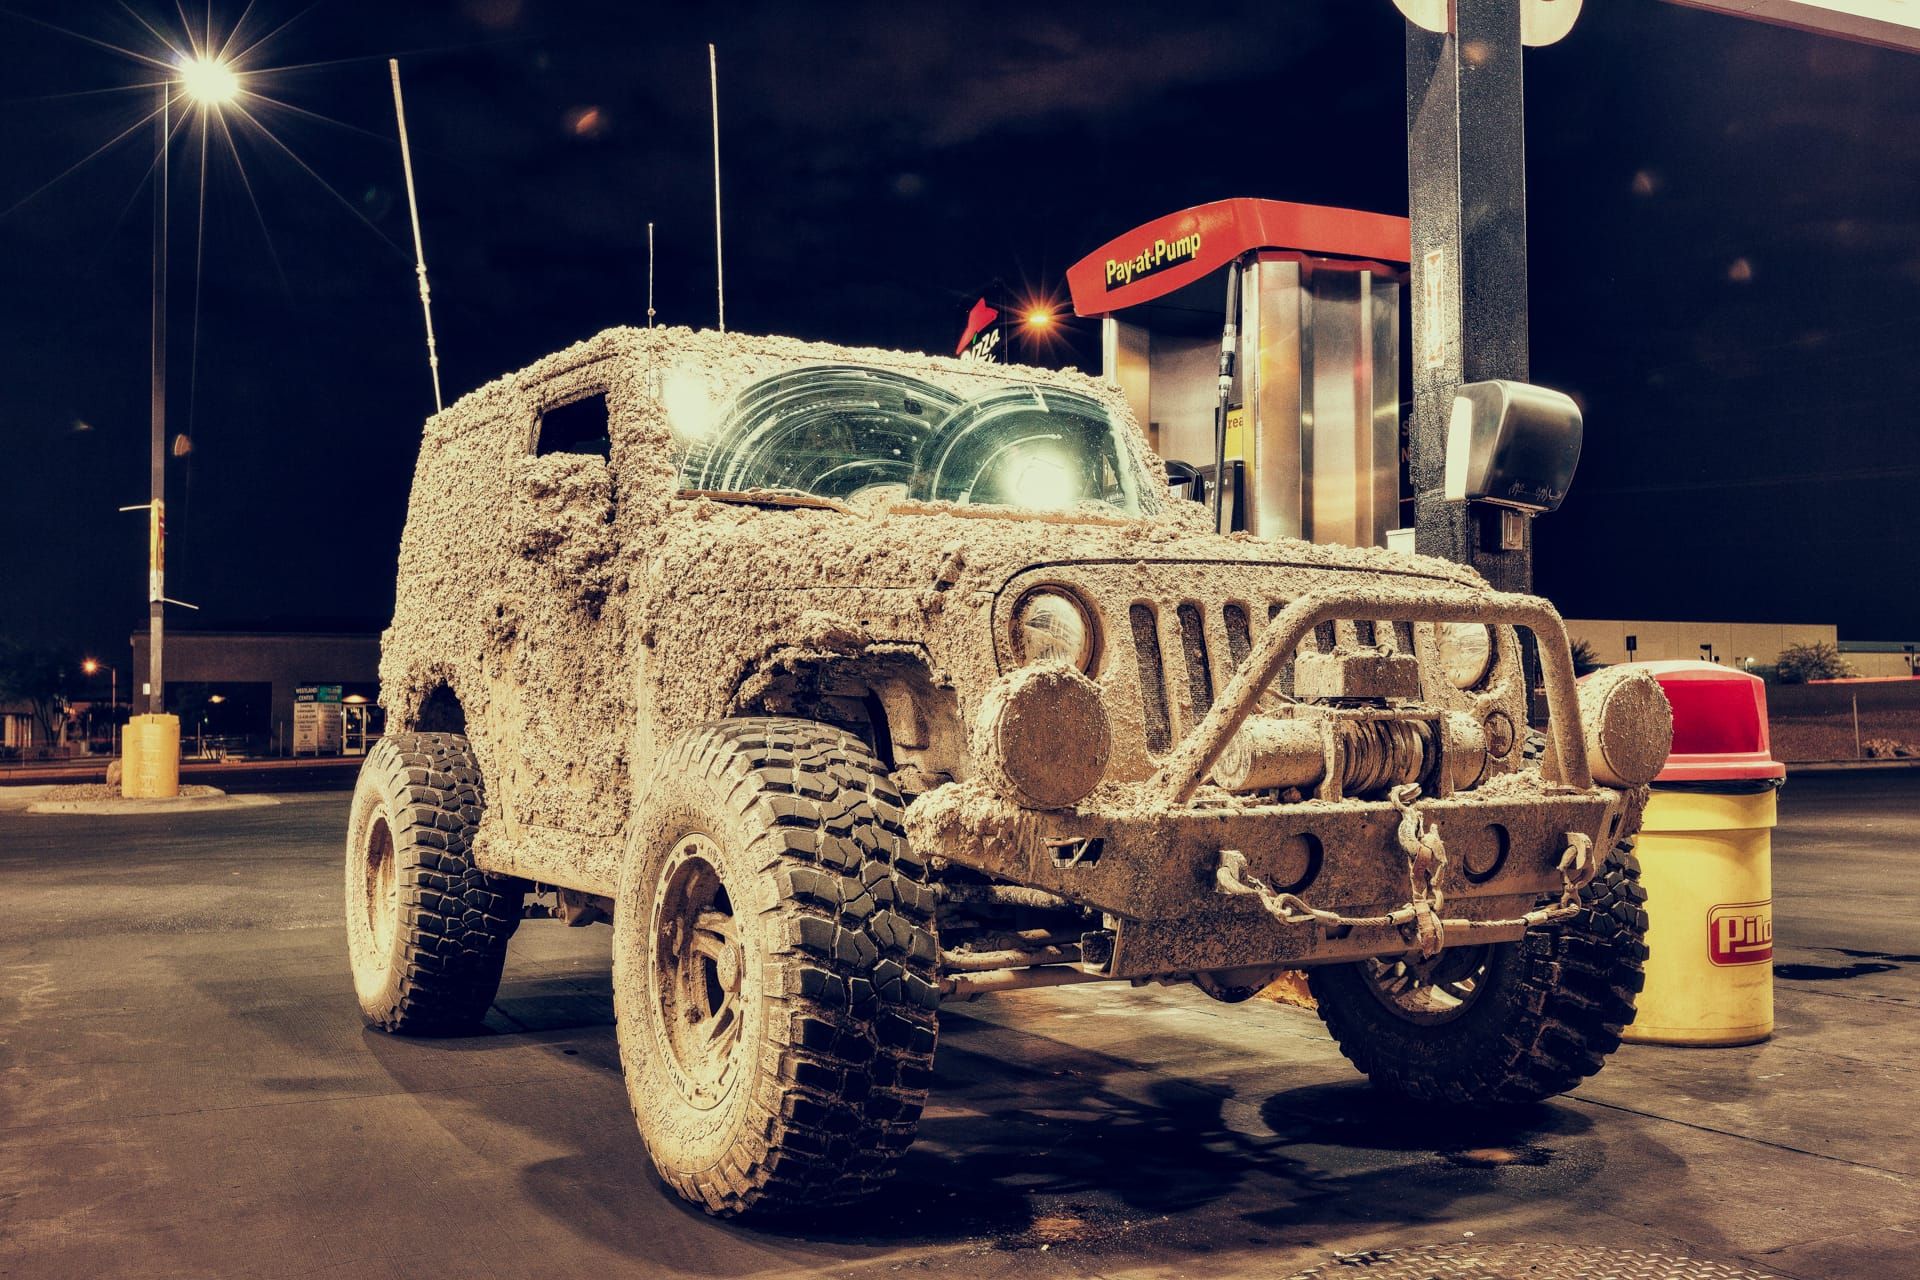 HDR Photo, Mud Truck, Las Vegas